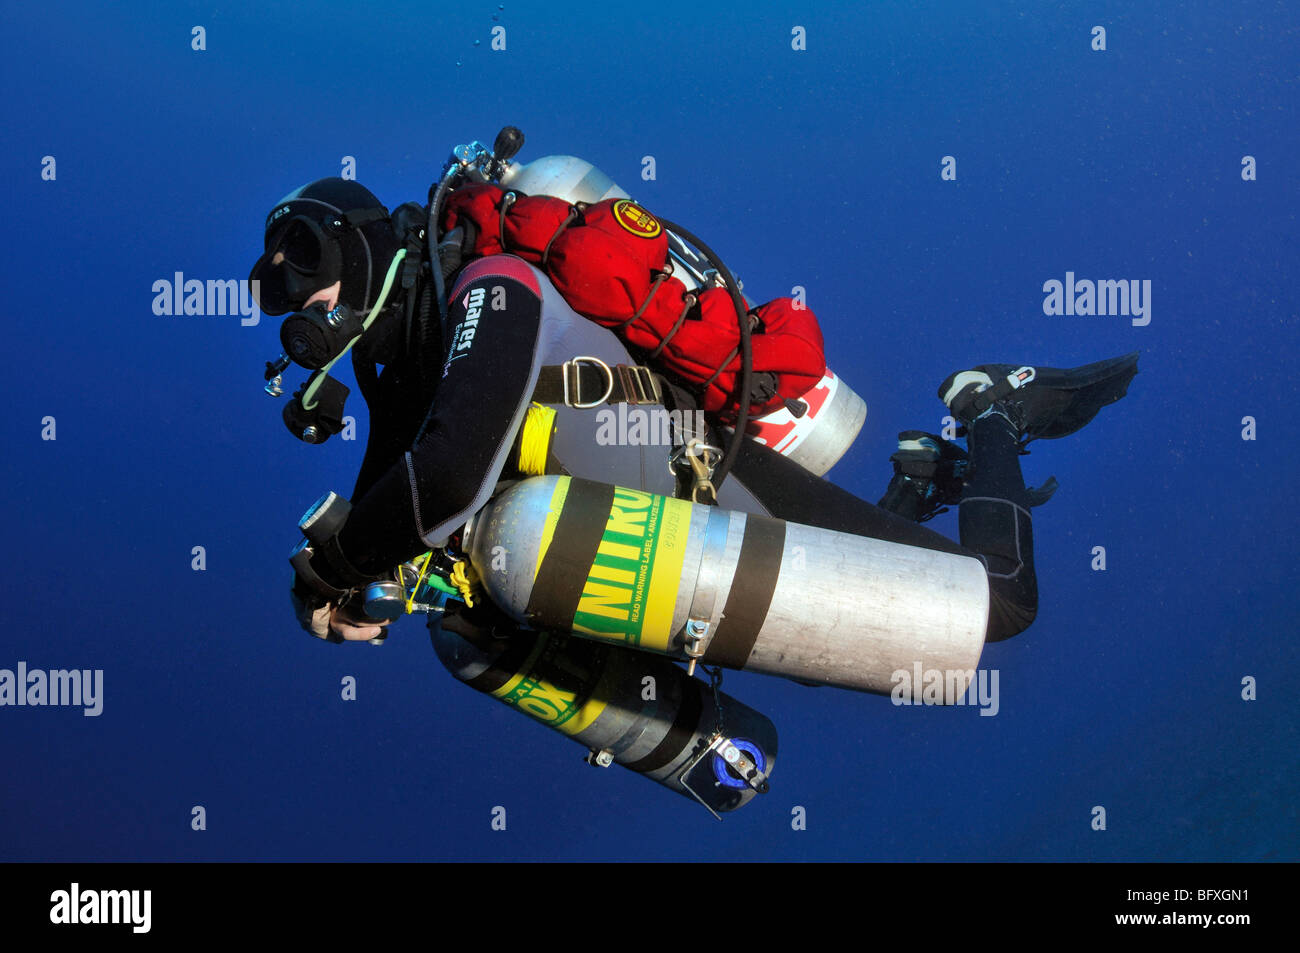 Technical scuba diver diving underwater with multiple cylinders Ras Abu Gallum, 'Red Sea' - Stock Image